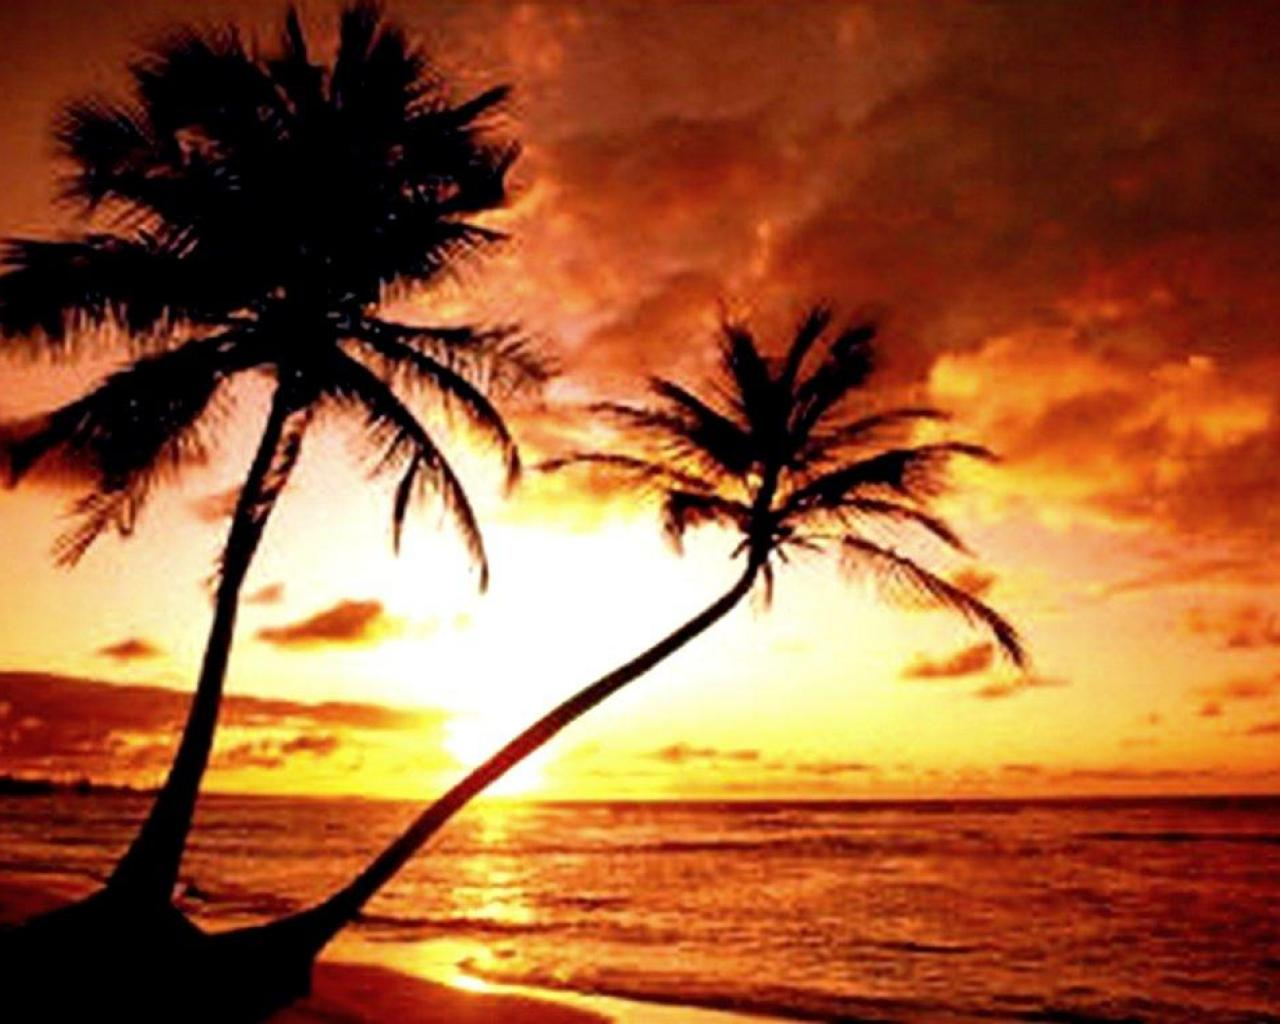 TROPICAL BEACH SUNSET WALLPAPER   23482   HD Wallpapers 1280x1024